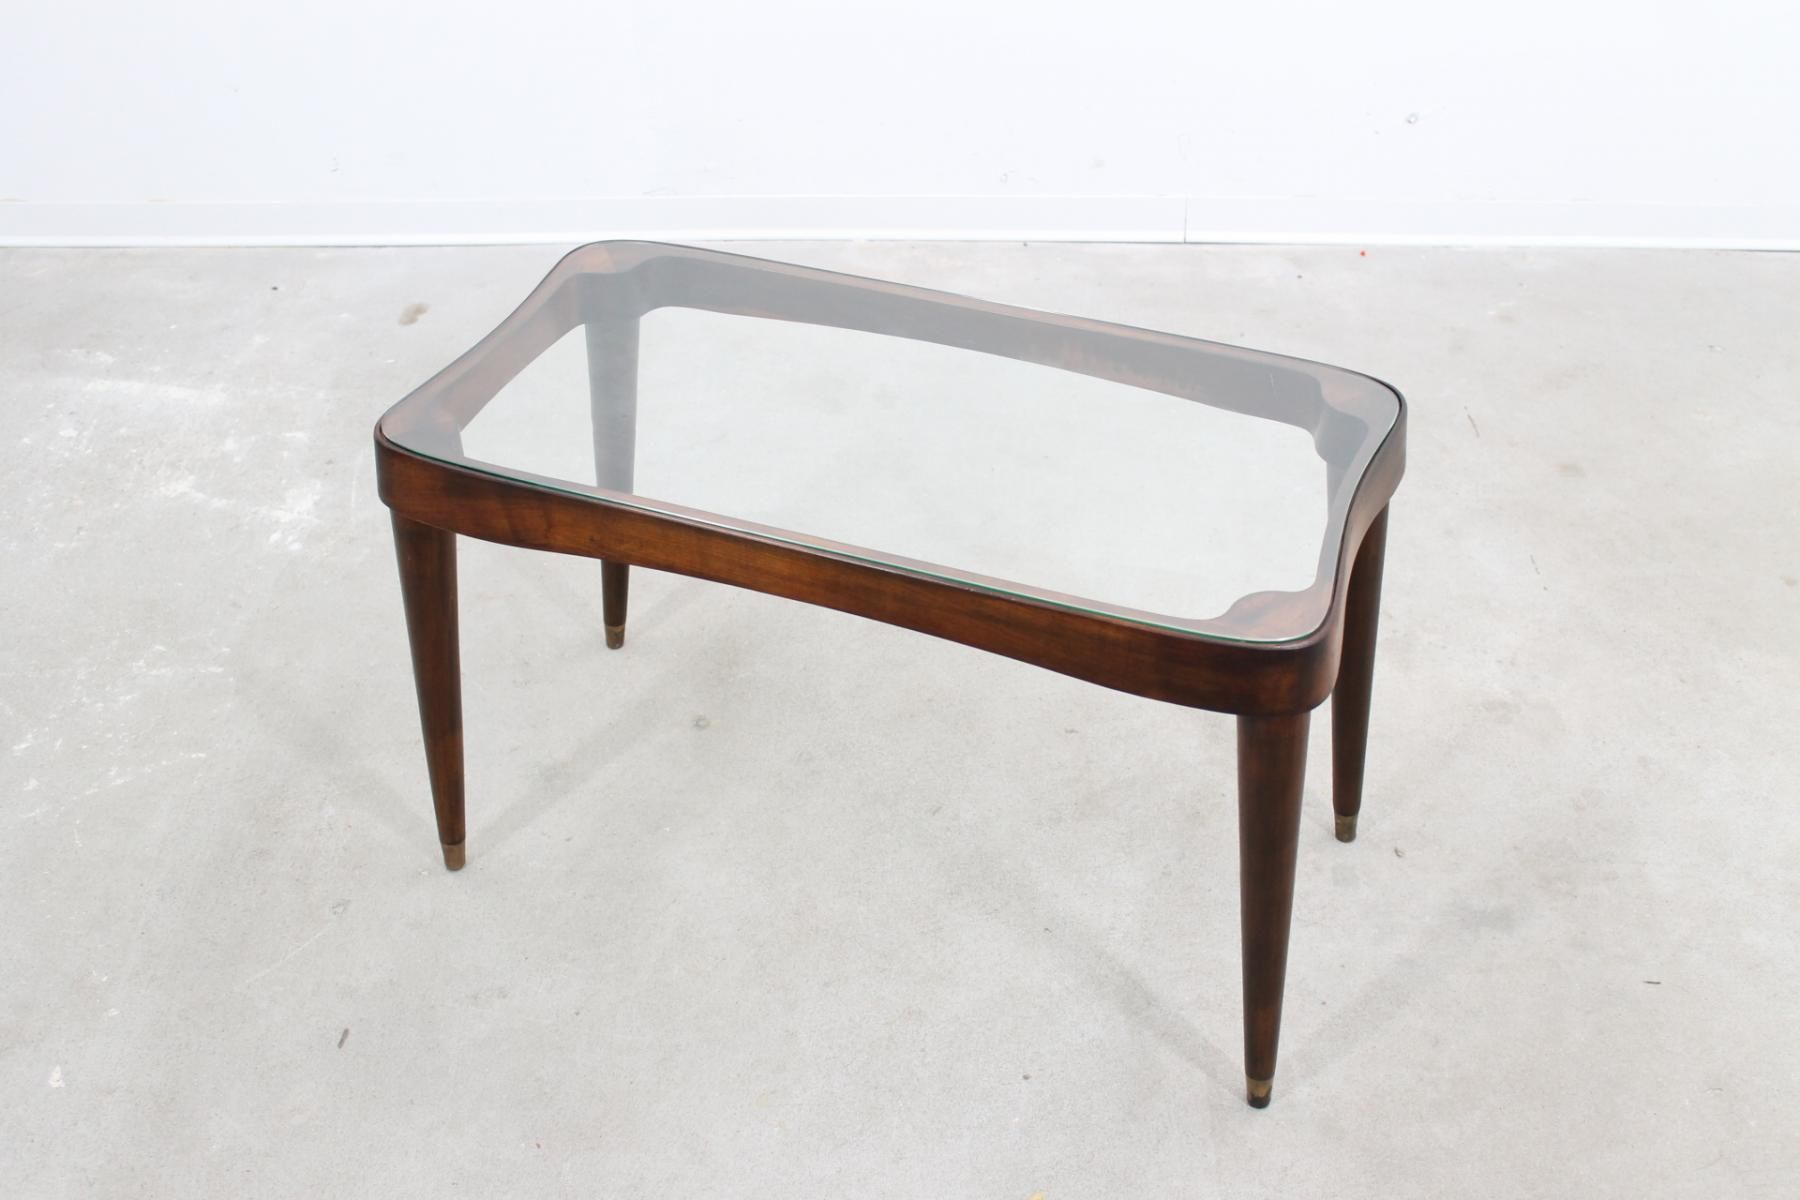 Mid Century Coffee Table with Glass Top by Gio Ponti brass feet